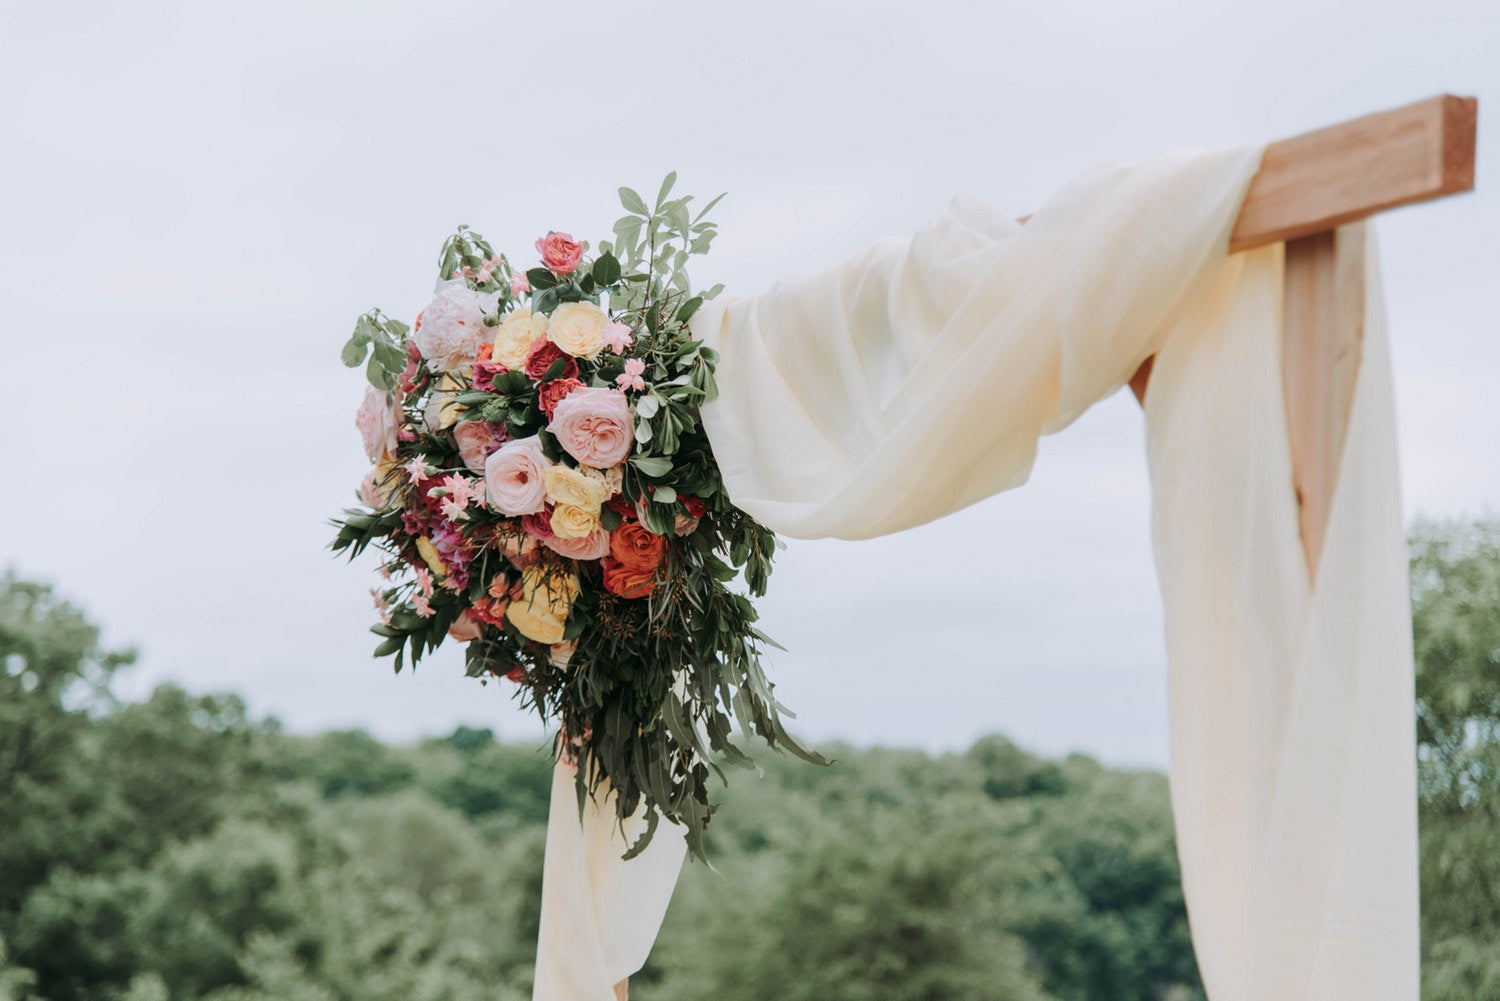 2019 Wedding Trends that you should know about